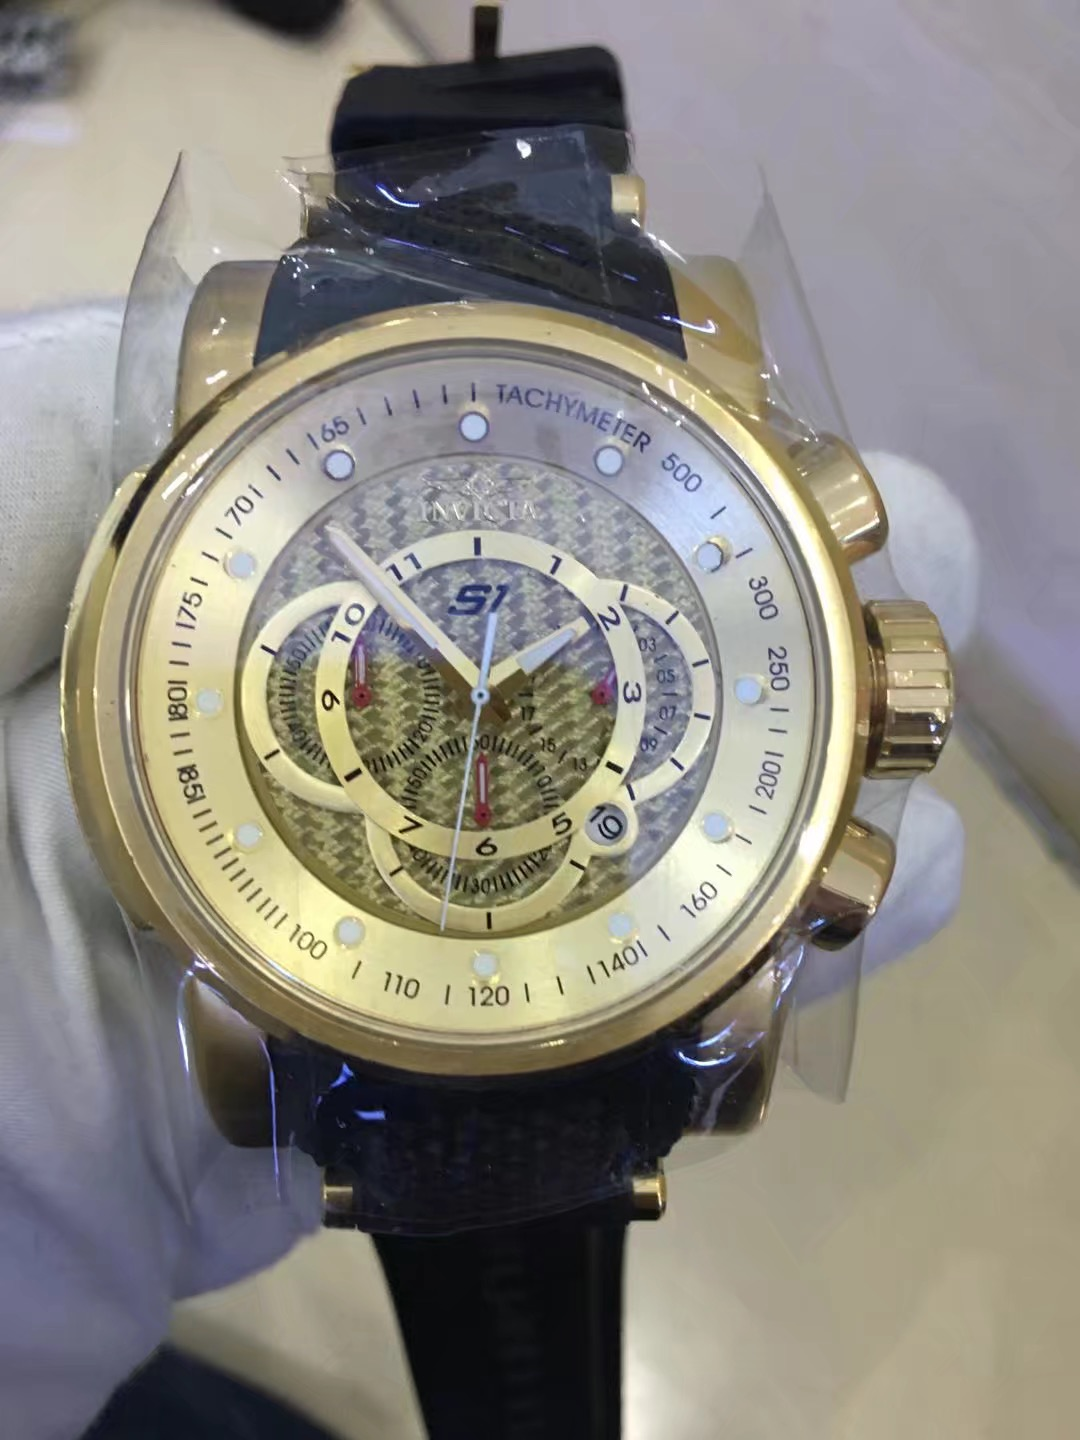 INVICTA Watch 37